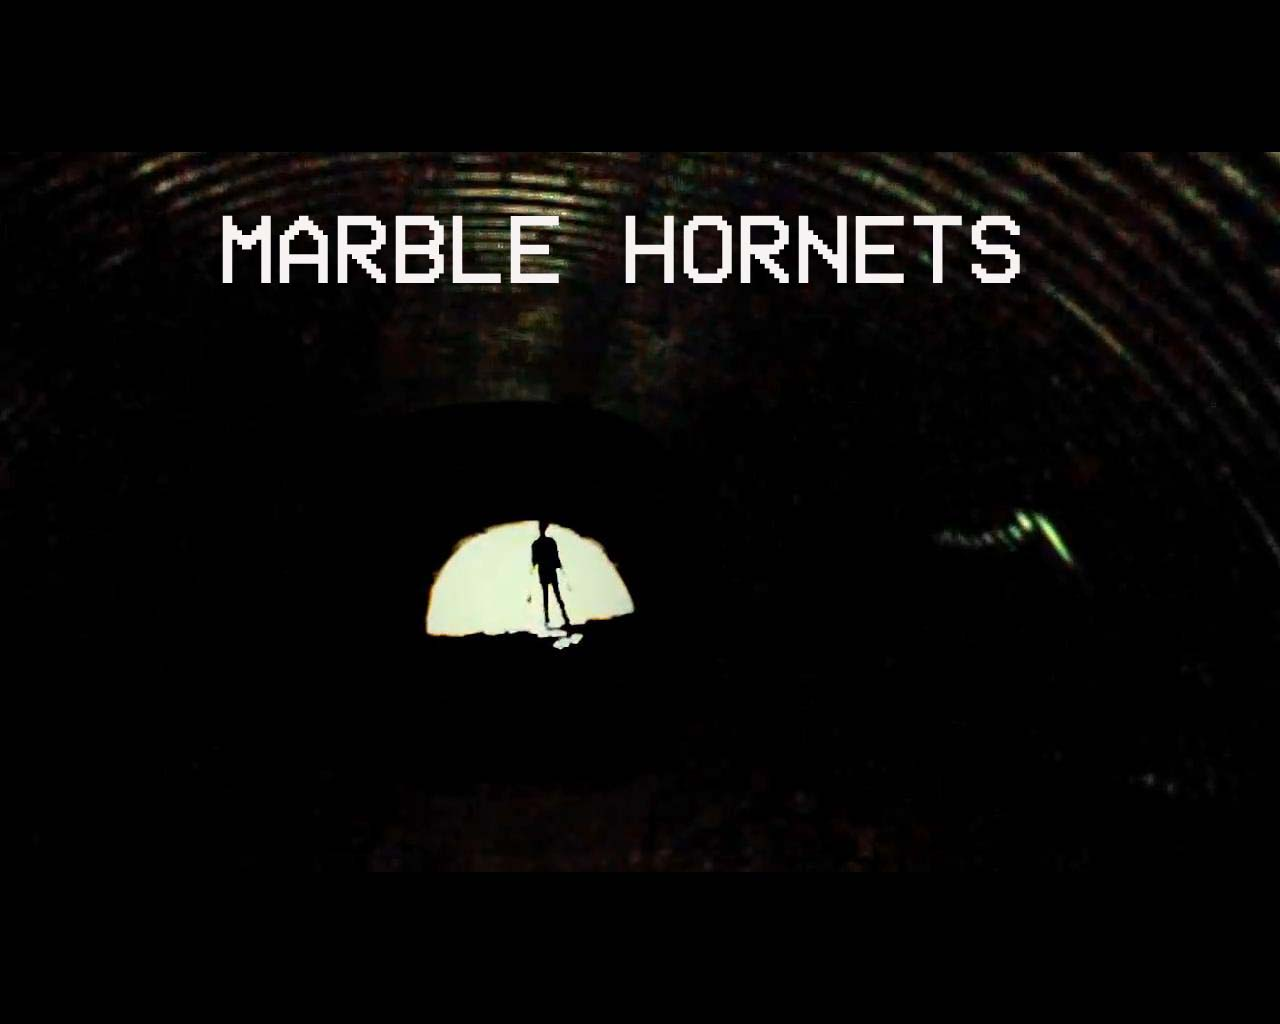 List Of Marblehornets Entries The Slender Man Wiki Fandom Angie39s Tip Older Homes With Defective Circuit Breakers Mh1